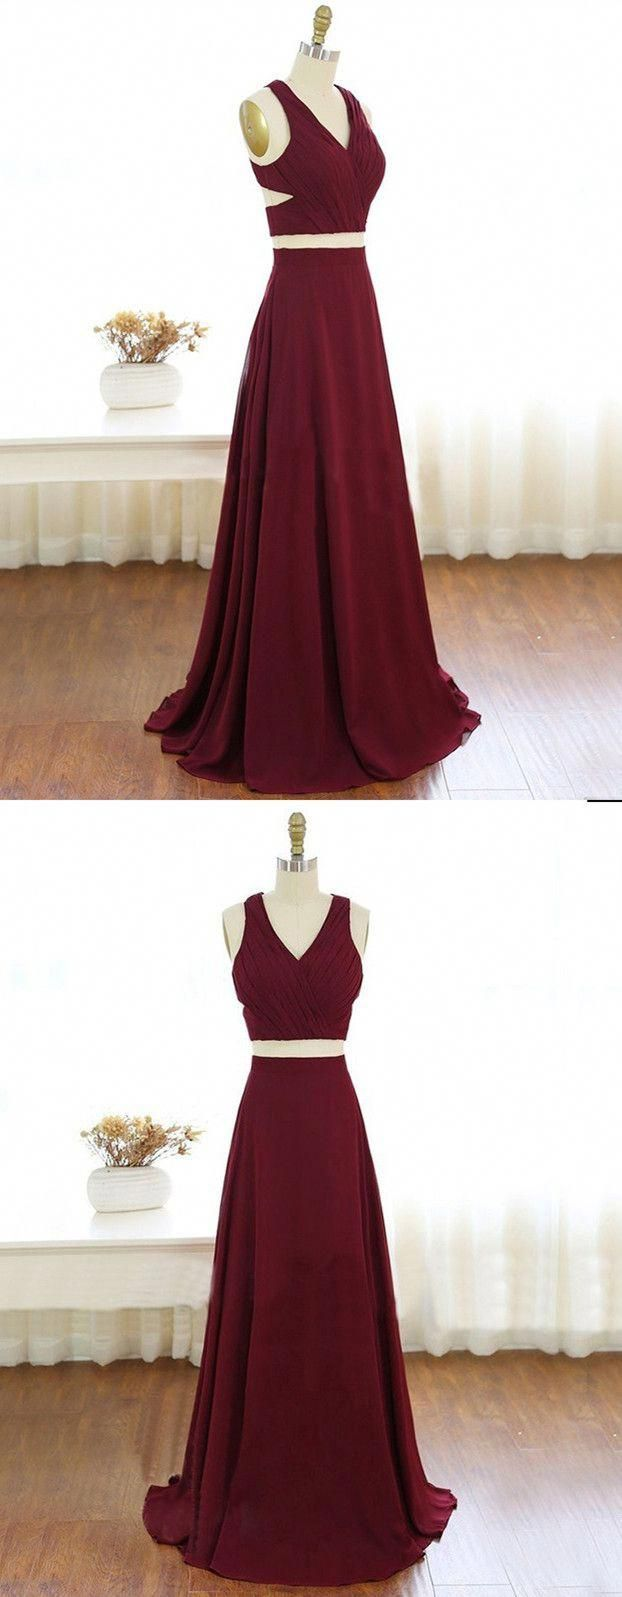 Prom dresseslong prom party dresses cheap pieces party dresses